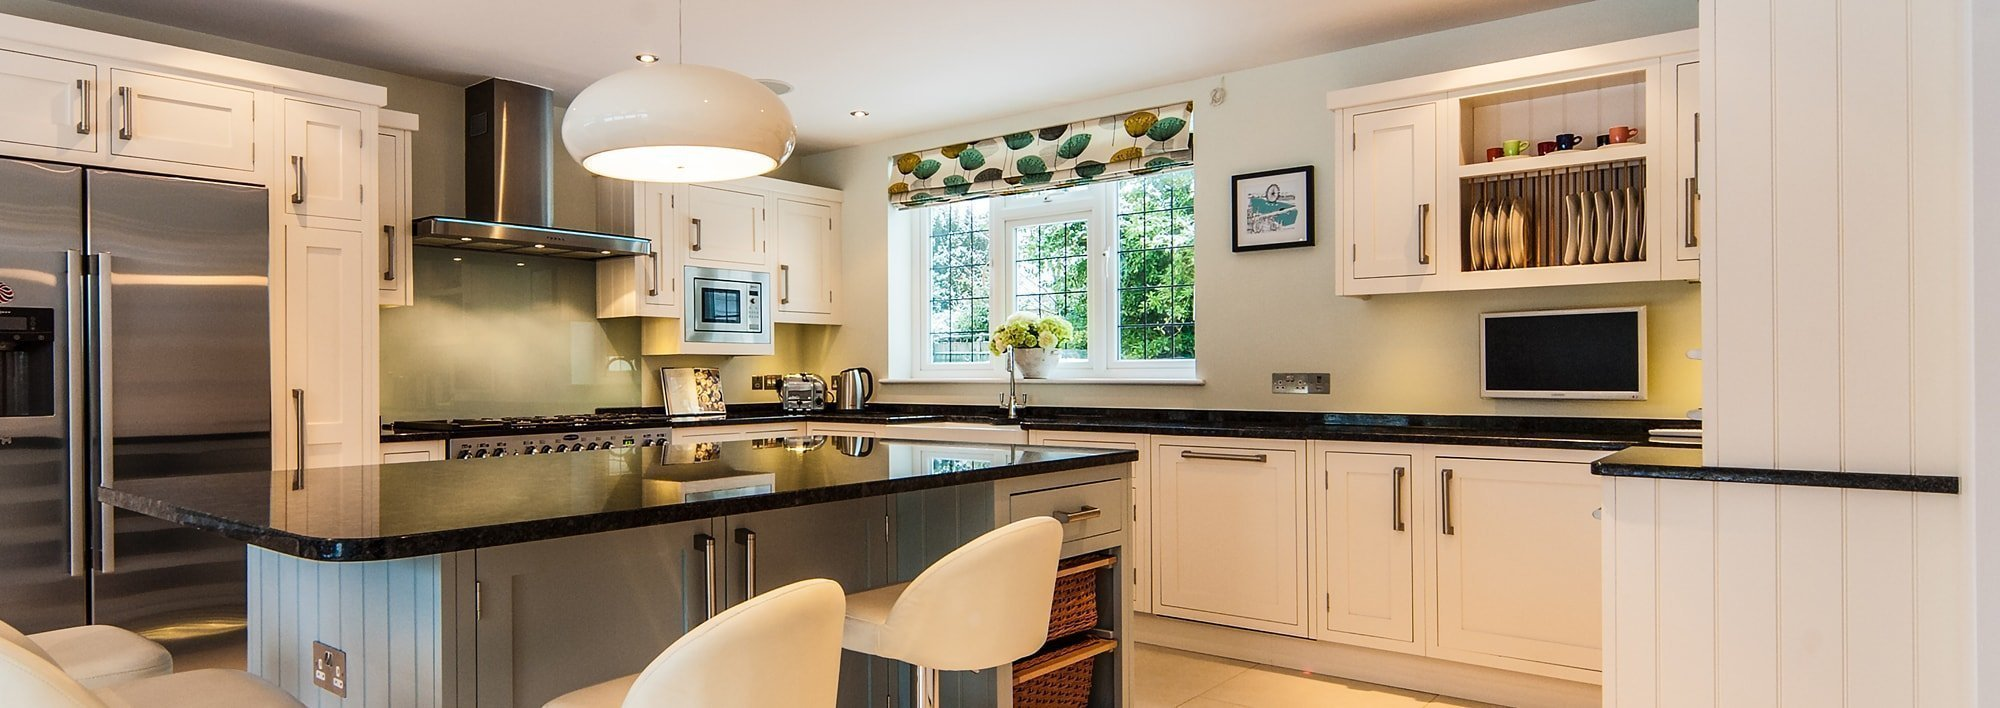 steel_grey_granite_cuckfield_west_sussex_yew_tree_kitchens_110424a_kitchen header header-min